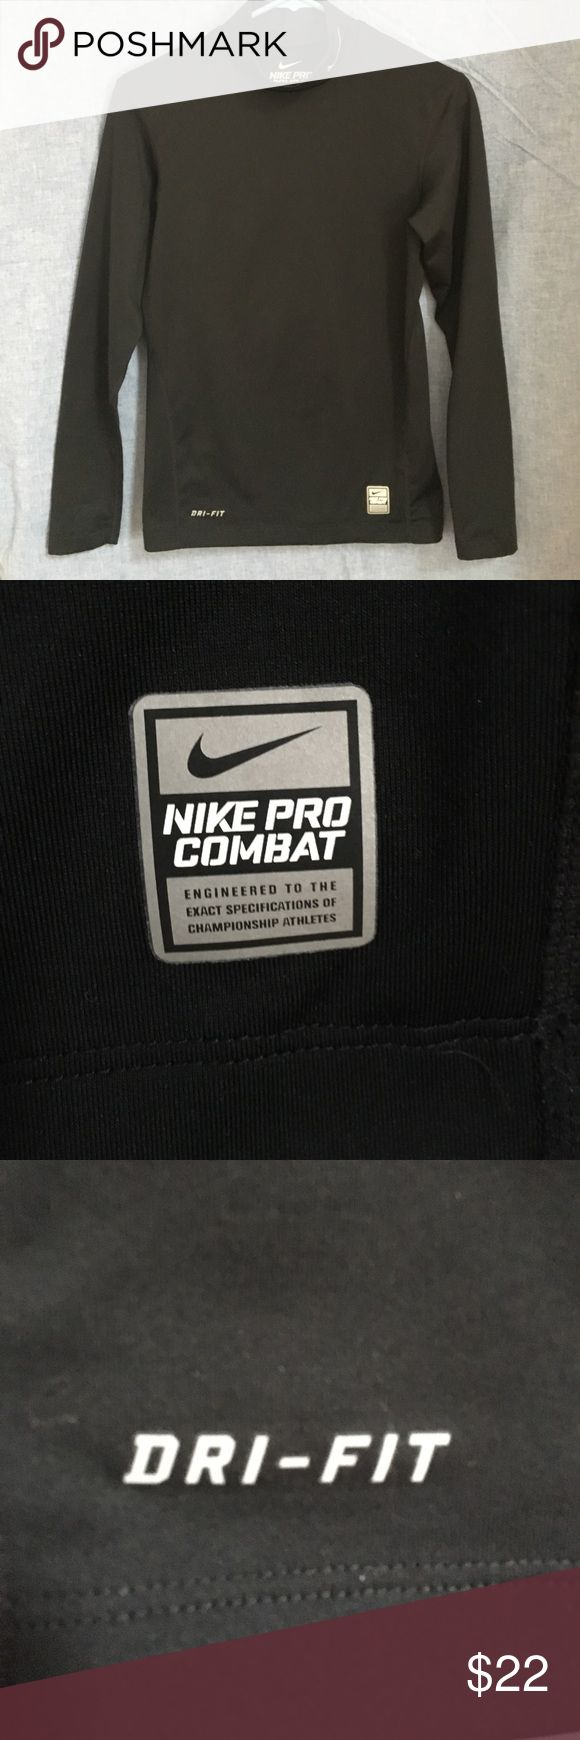 Nike Pro Combat Dri-Fit Compression Mock Shirt SM Nike Pro Combat Dri-Fit Compression Black Mock Neck Long Sleeve Shirt Size Small. In excellent, like new condition. Nike Pro Combat jock tag at front left hem and Dri-Fit trademark heat transfer at front right hem. Embroidered Swoosh design trademark on left neck. Nike Shirts Tees - Long Sleeve